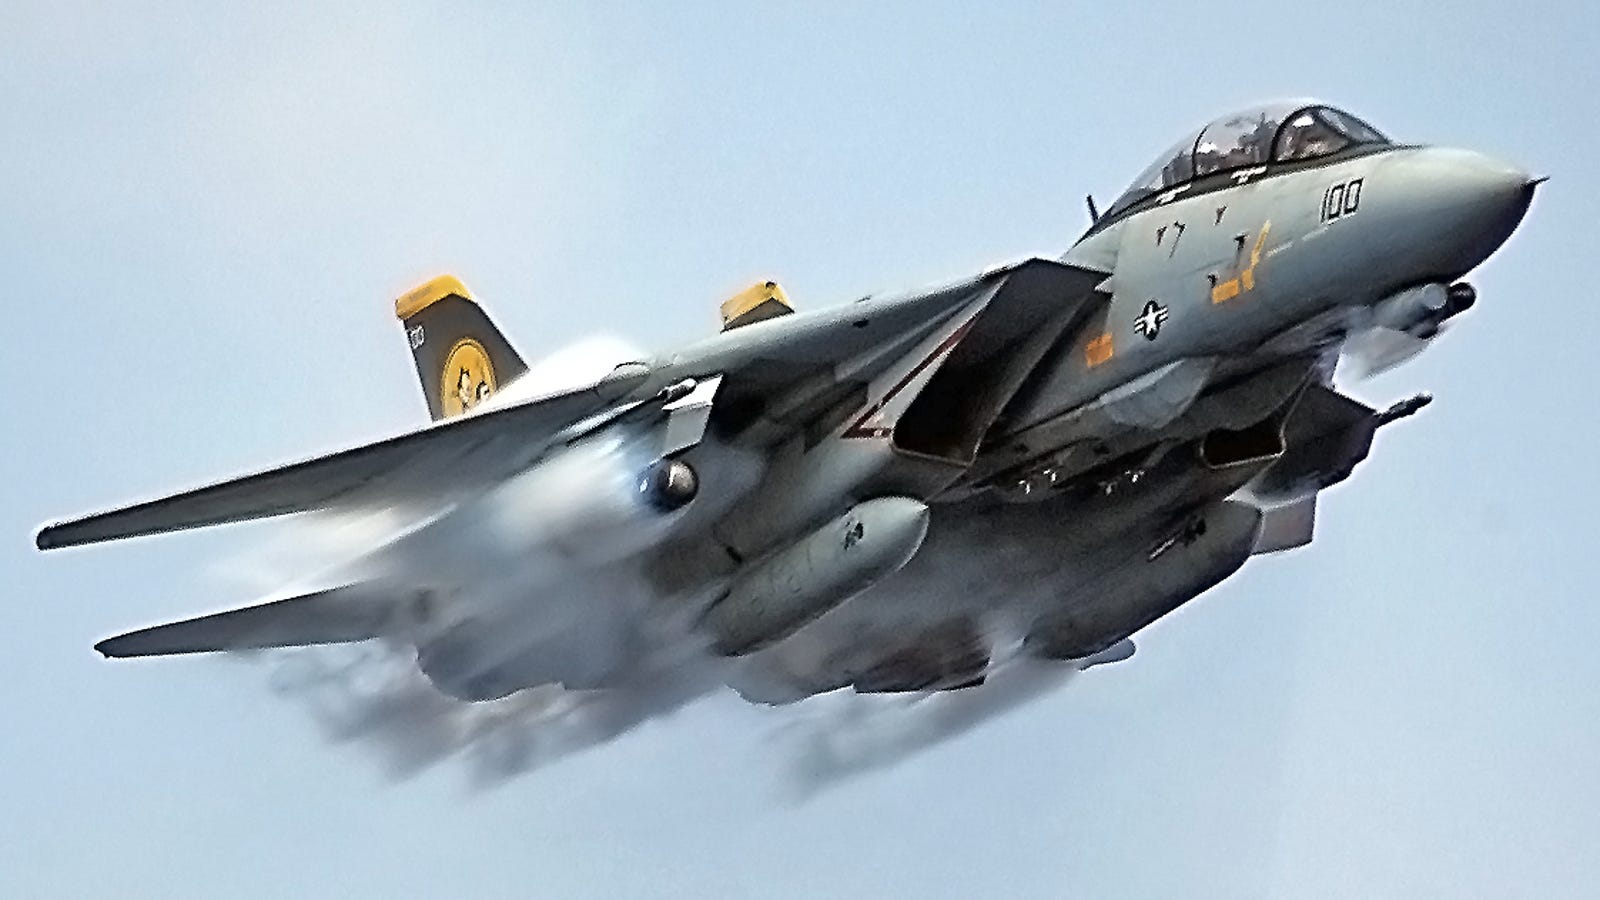 Elite F 14 Flight Officer Explains Why The Tomcat Was So Influential Super Short Circuits Flown With An Rc Model Plane Richard Youtube